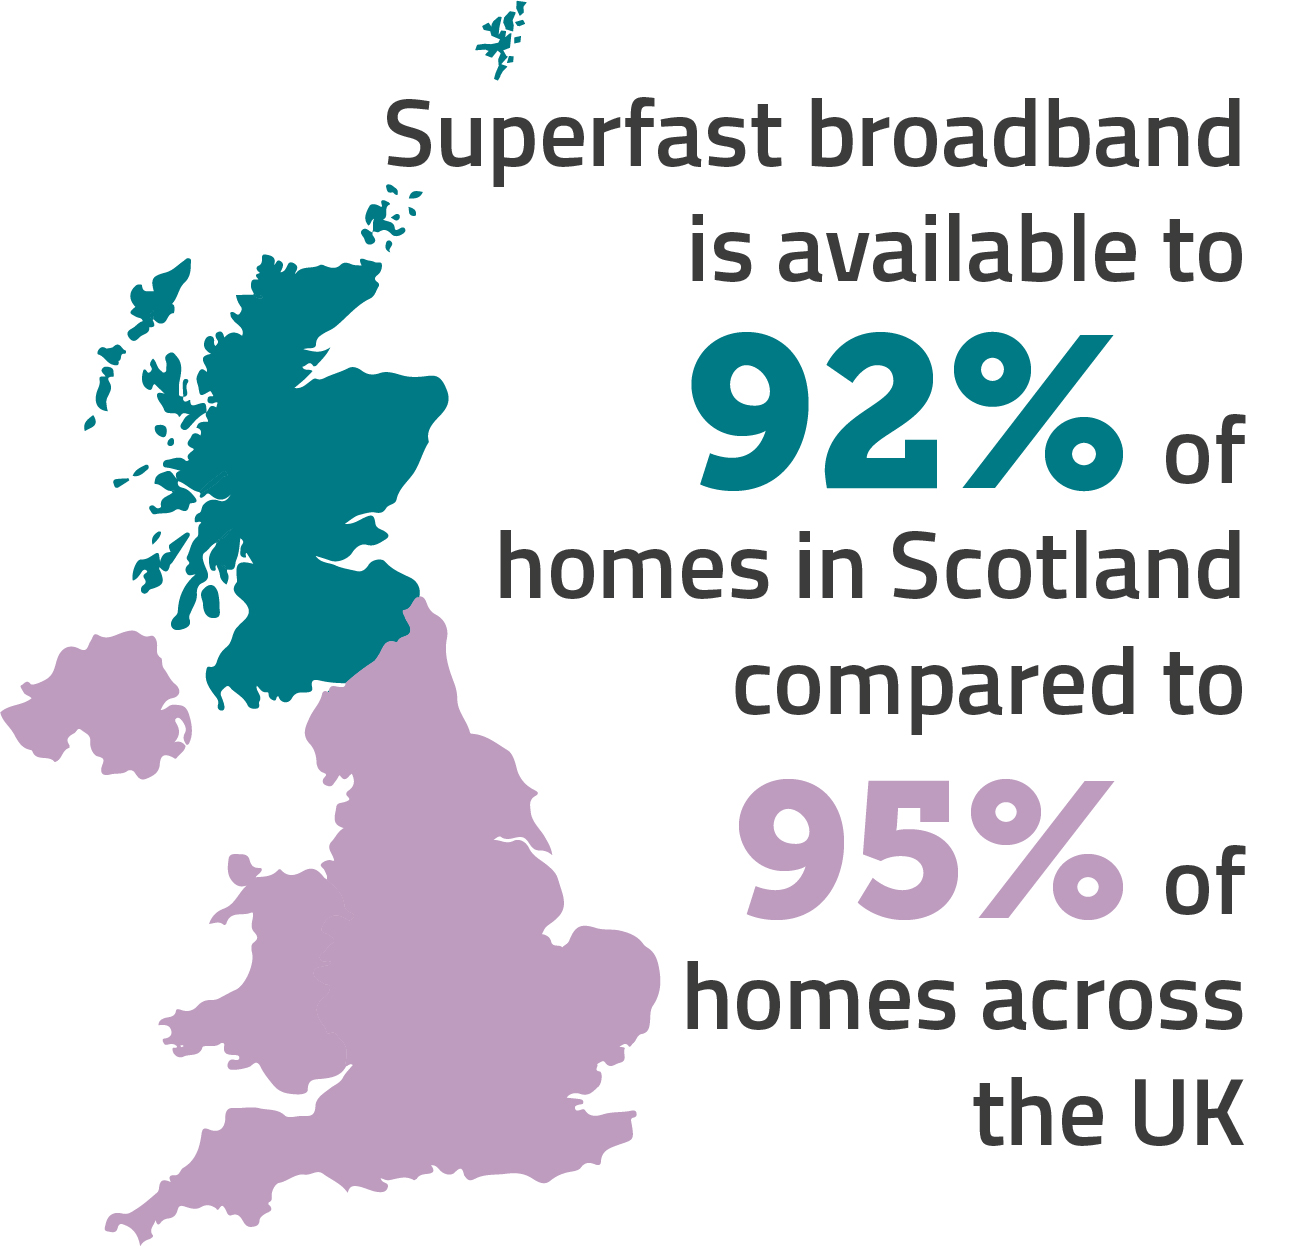 92% of homes in Scotland have access to superfast broadband, compared to 95% of homes in the wider UK.